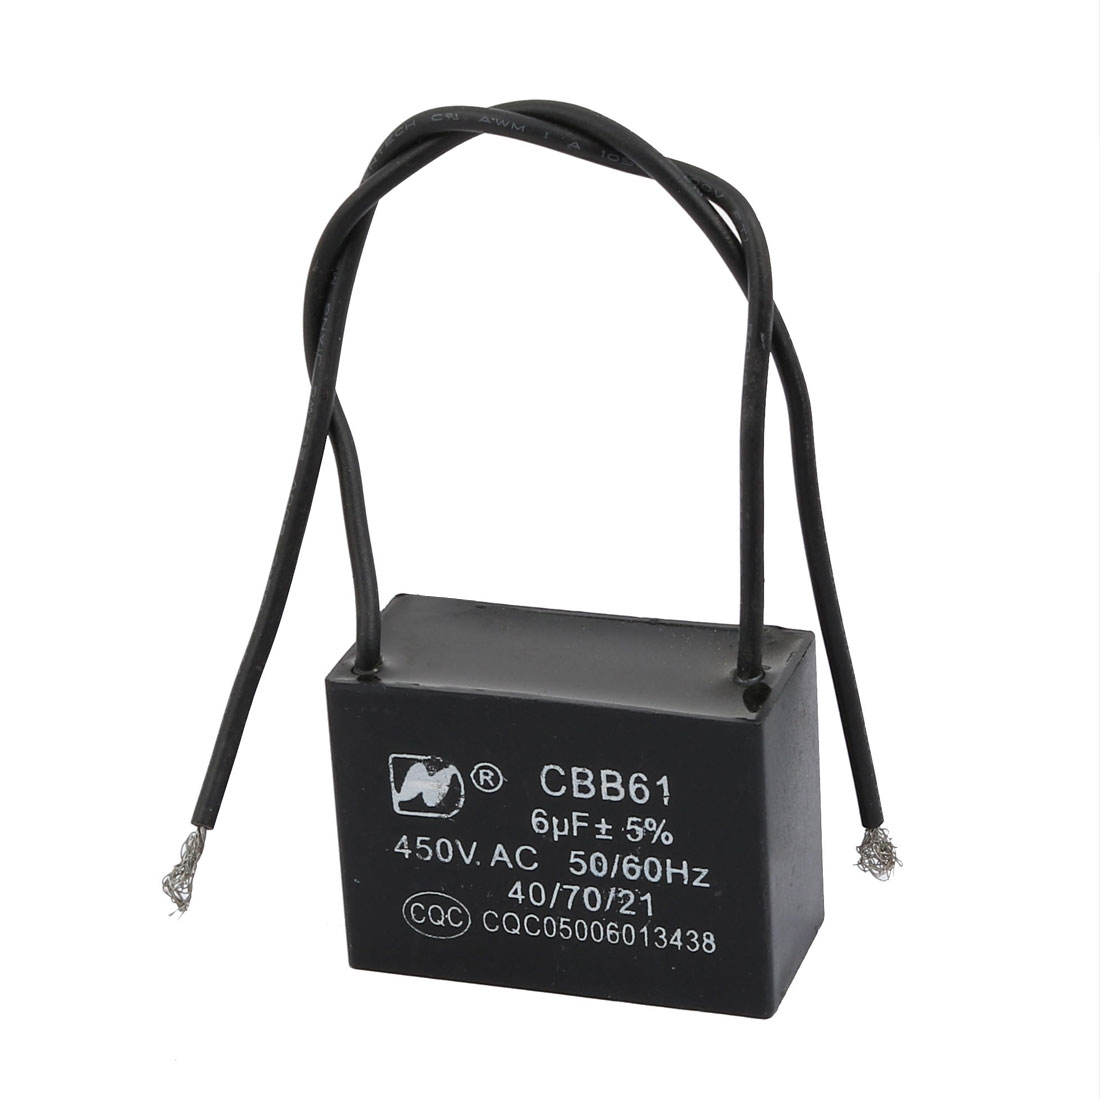 CBB61 AC450V 6uF 2-Wire Rectangle Metallized Ceiling Fan Motor Run Capacitor